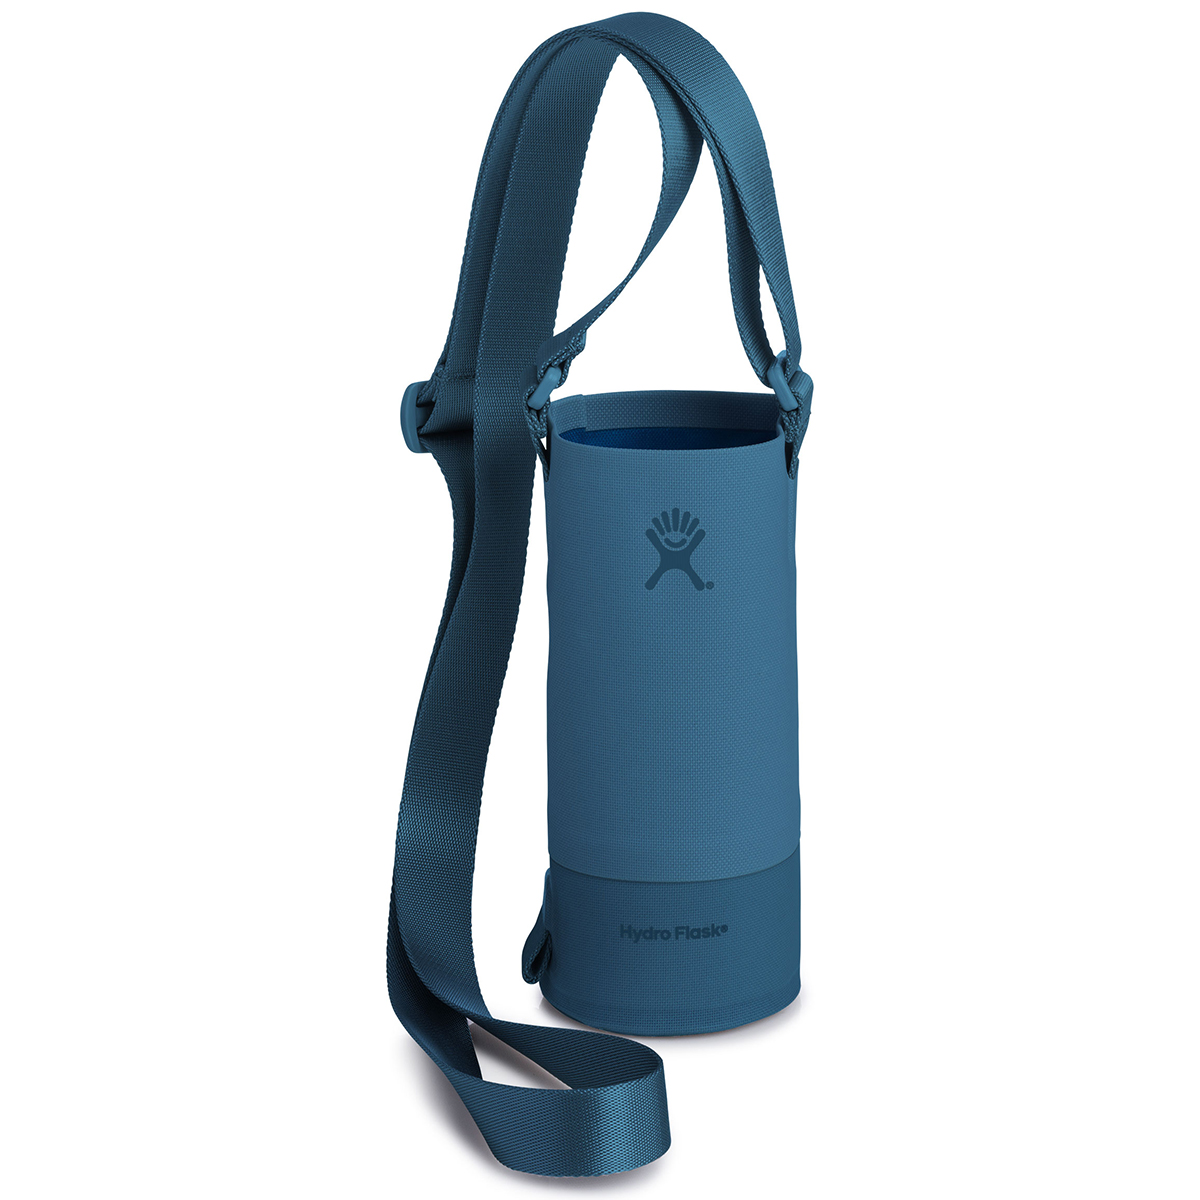 Hydro Flask Standard Tag Along Water Bottle Sling